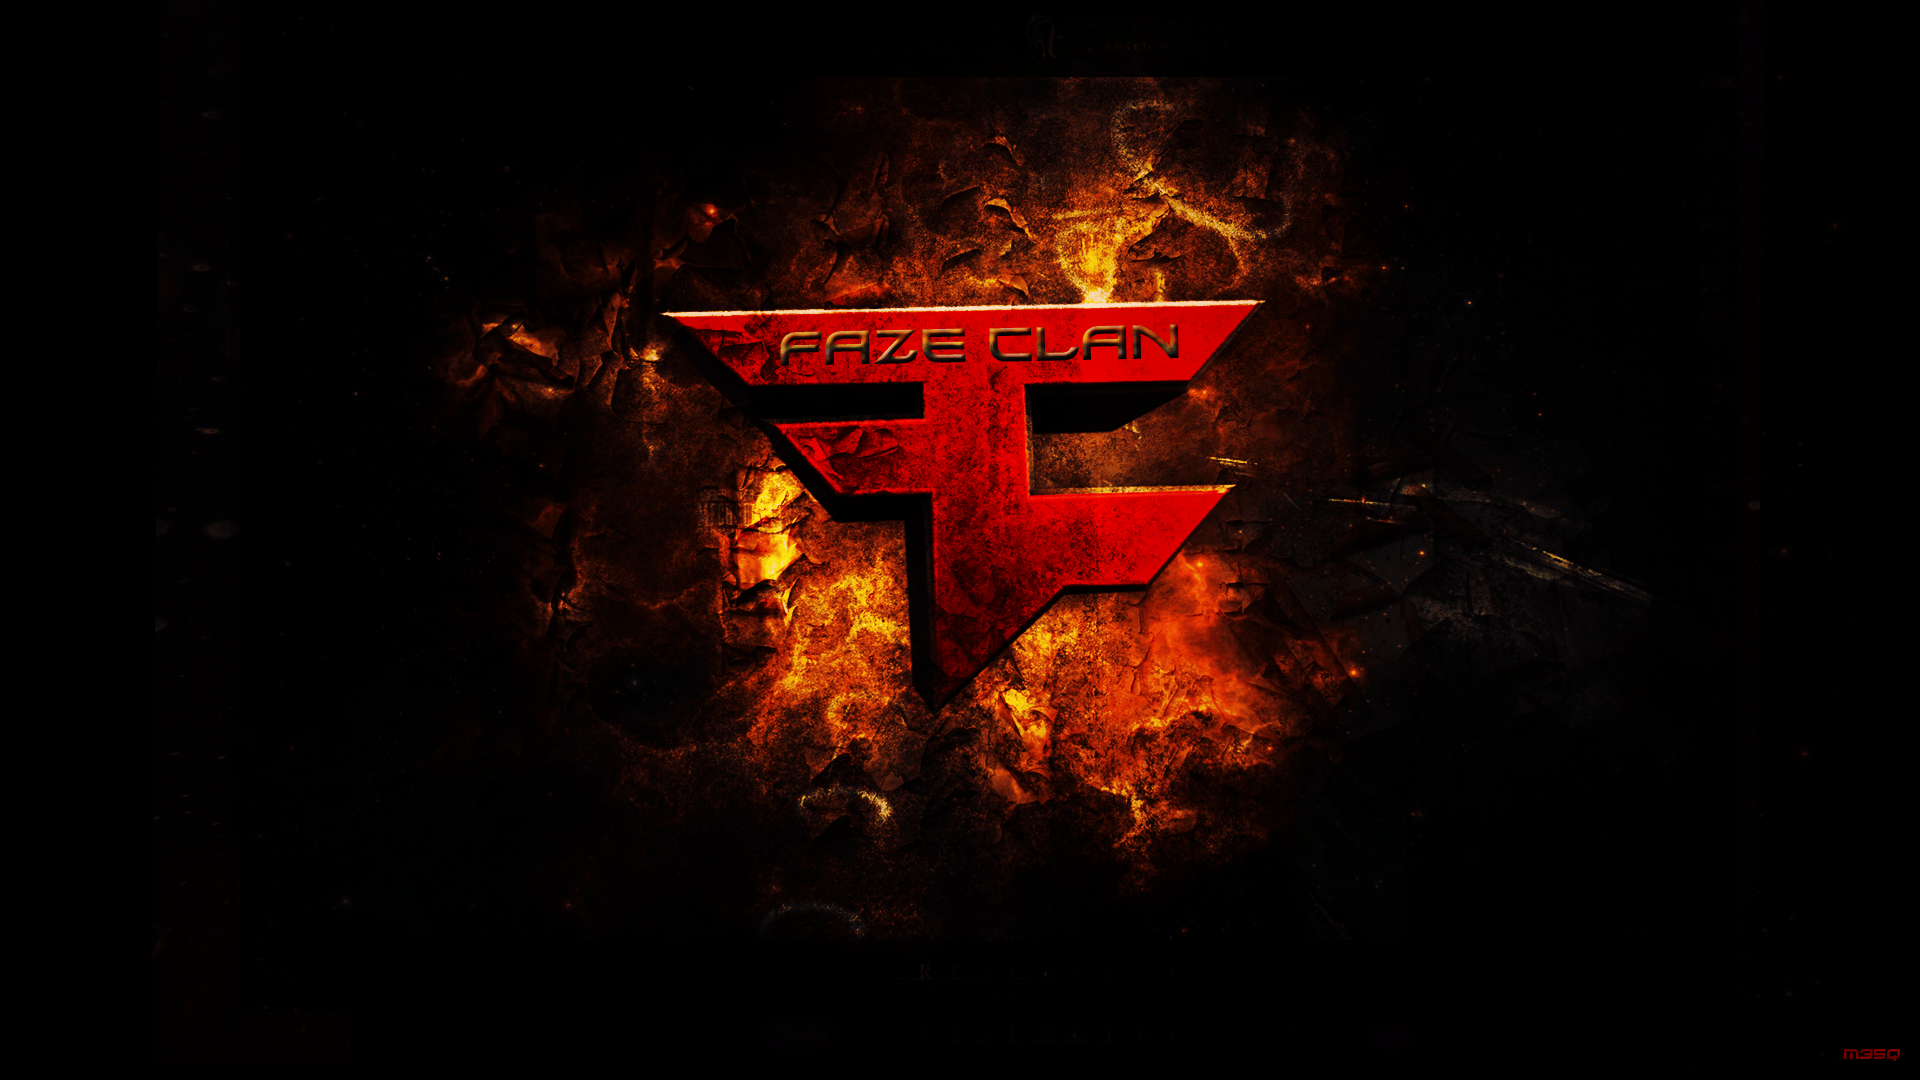 Faze Wallpaper – The Most Rated, Most Recommended Wallpaper Design